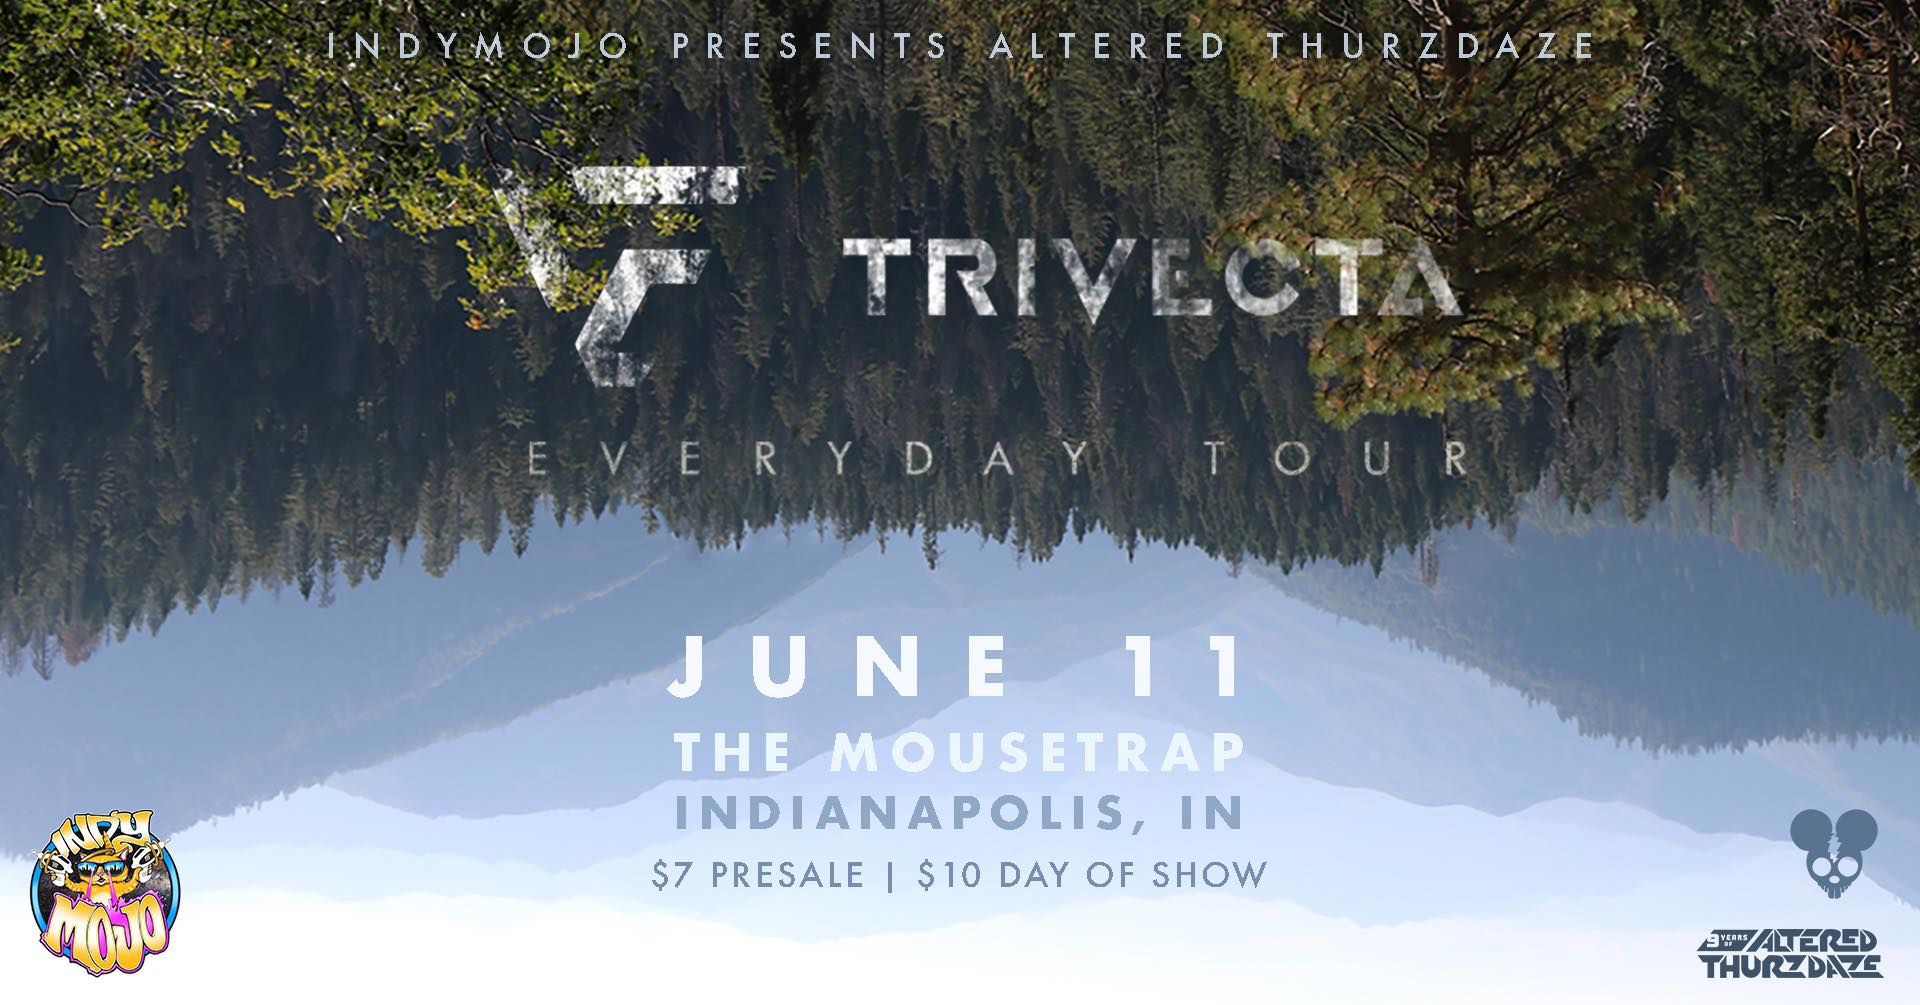 Altered Thurzdaze w/ Trivecta - Thursday, June 11th